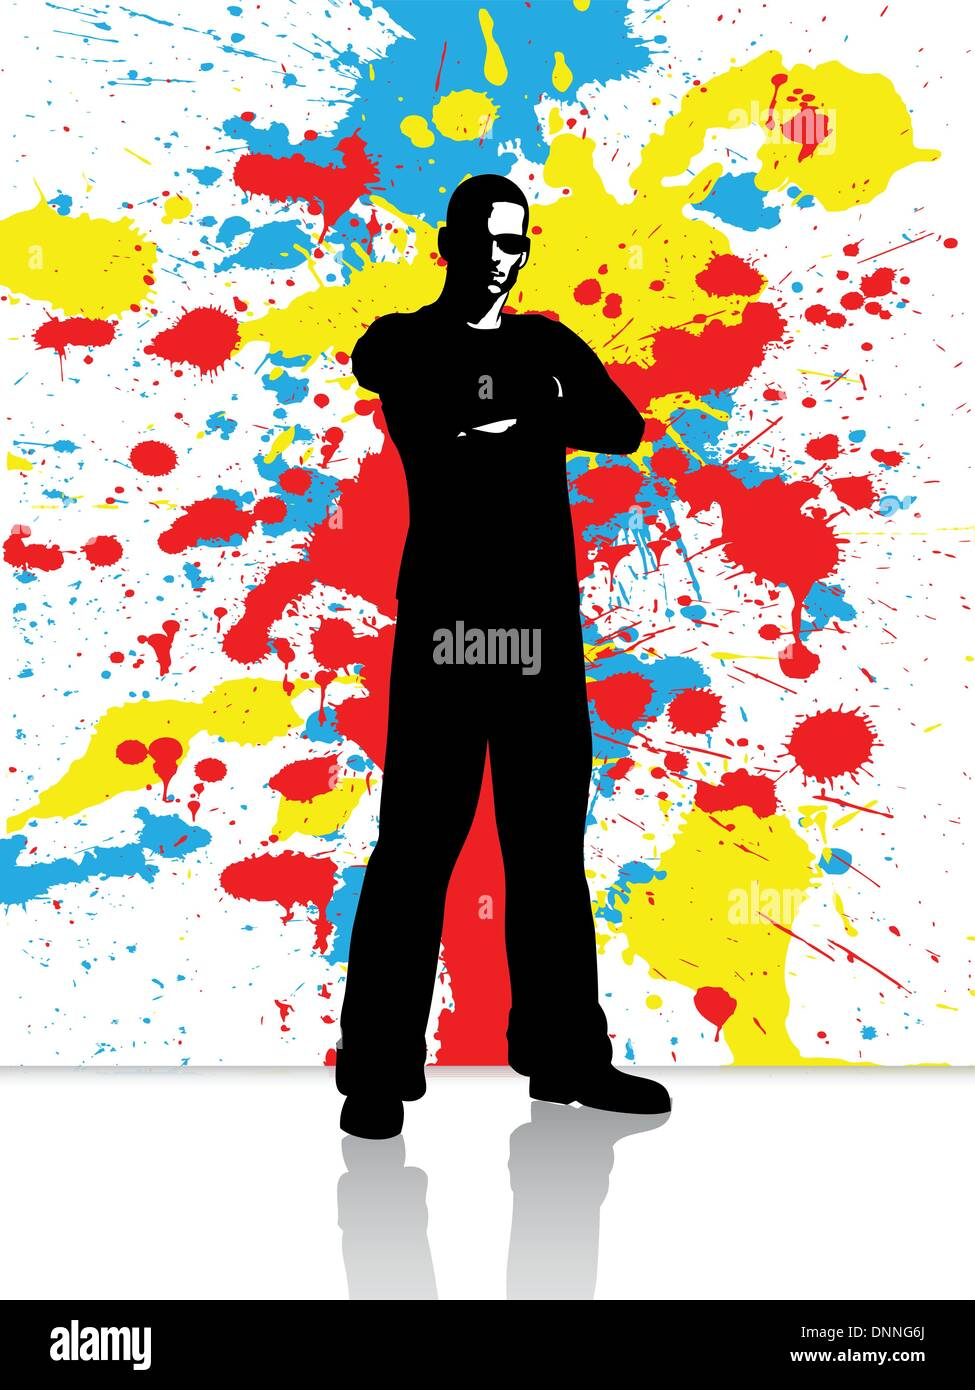 Silhouette of a male on a grunge background - Stock Image